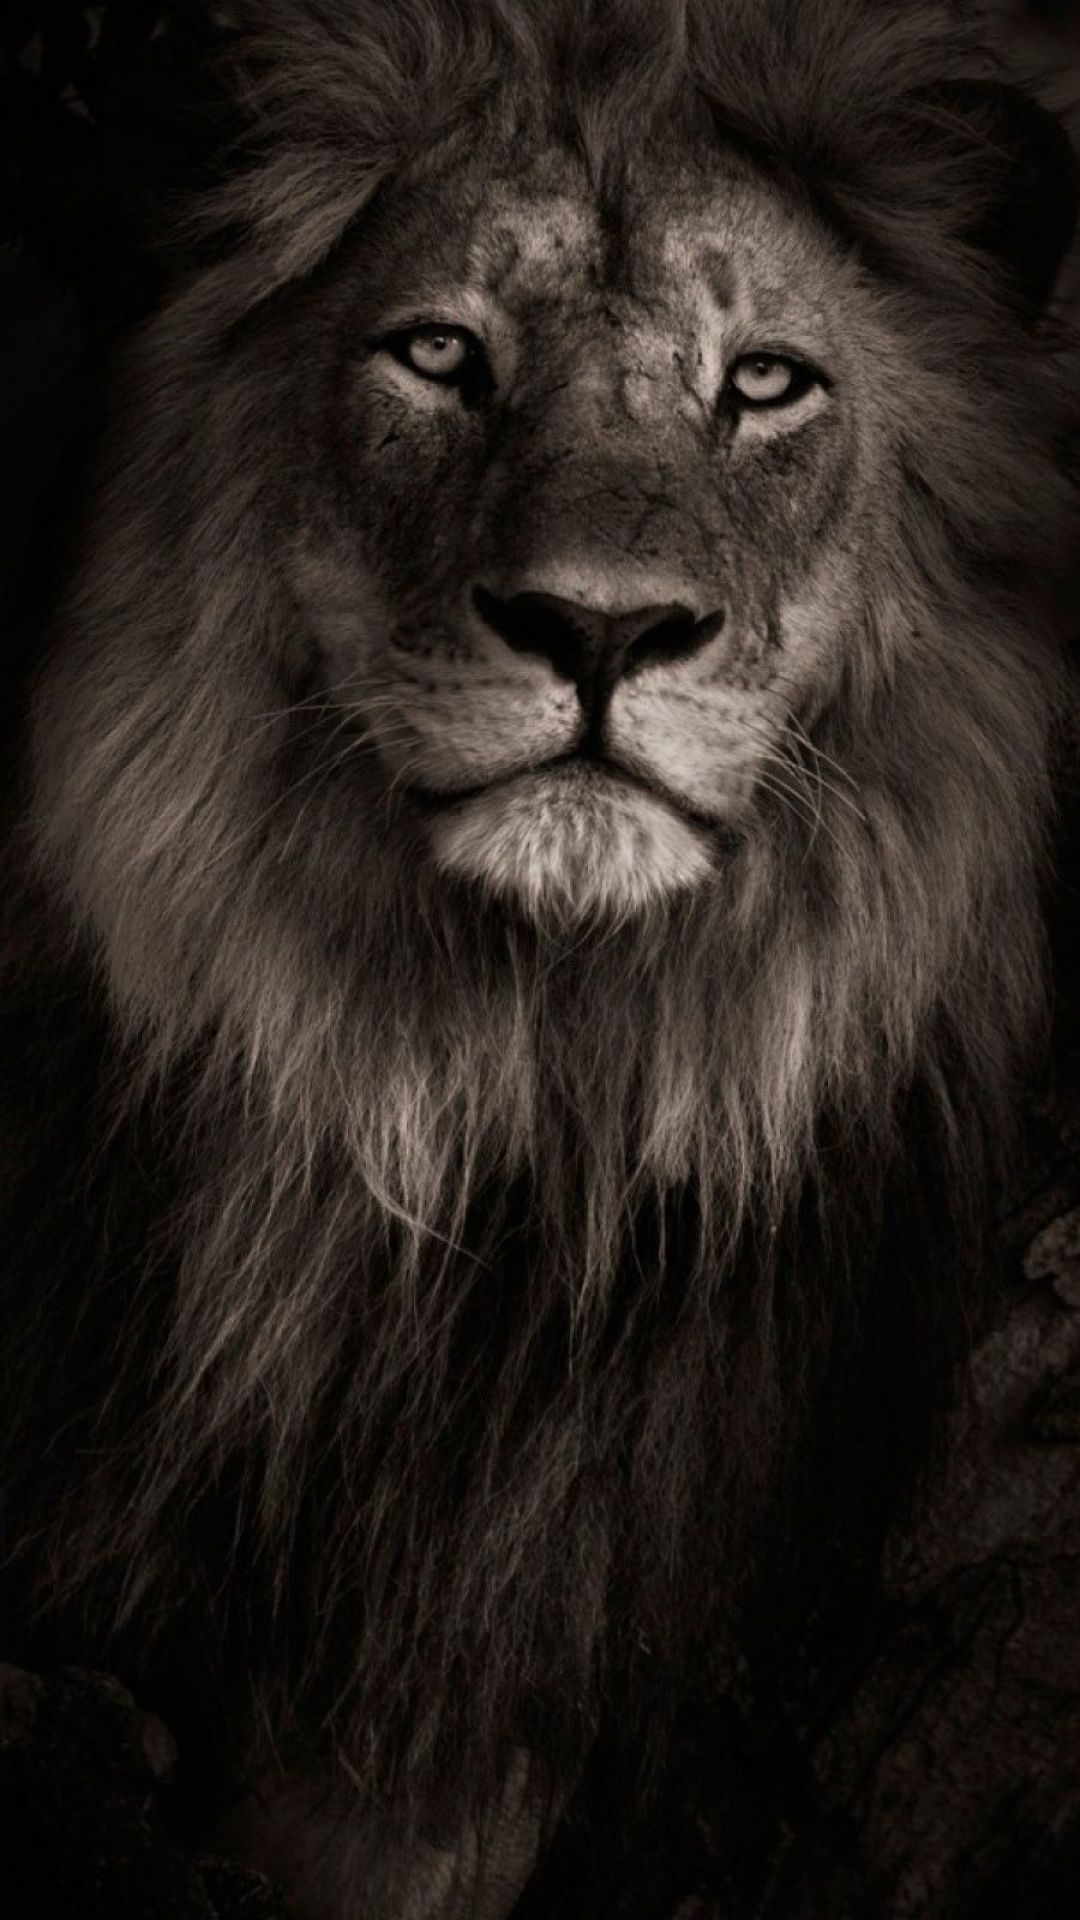 Lion Iphone Android Iphone Desktop Hd Backgrounds Wallpapers 1080p 4k 124844 Hdwallpapers An Lion Wallpaper Lion Wallpaper Iphone Lion Background